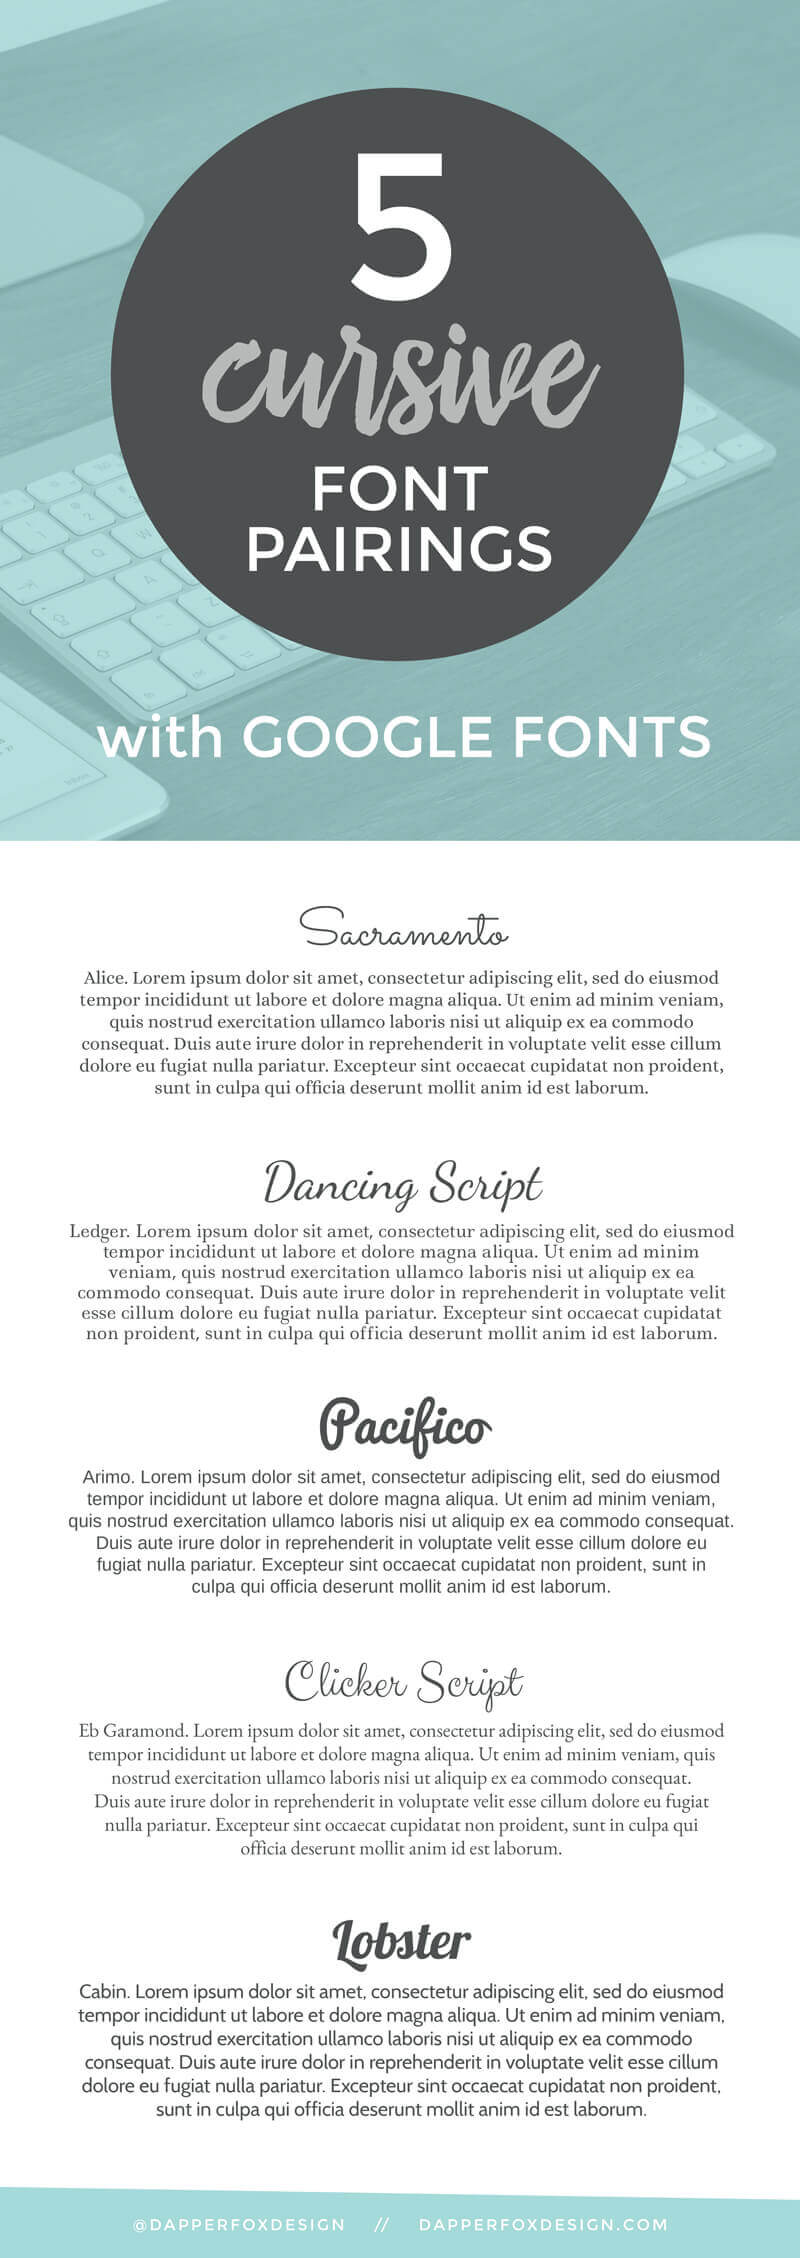 google font pairings how to pair fonts by Dapper Fox Design in Salt Lake City Utah //   Website Design - Branding - Logo Design - Entrepreneur Blog and Resource